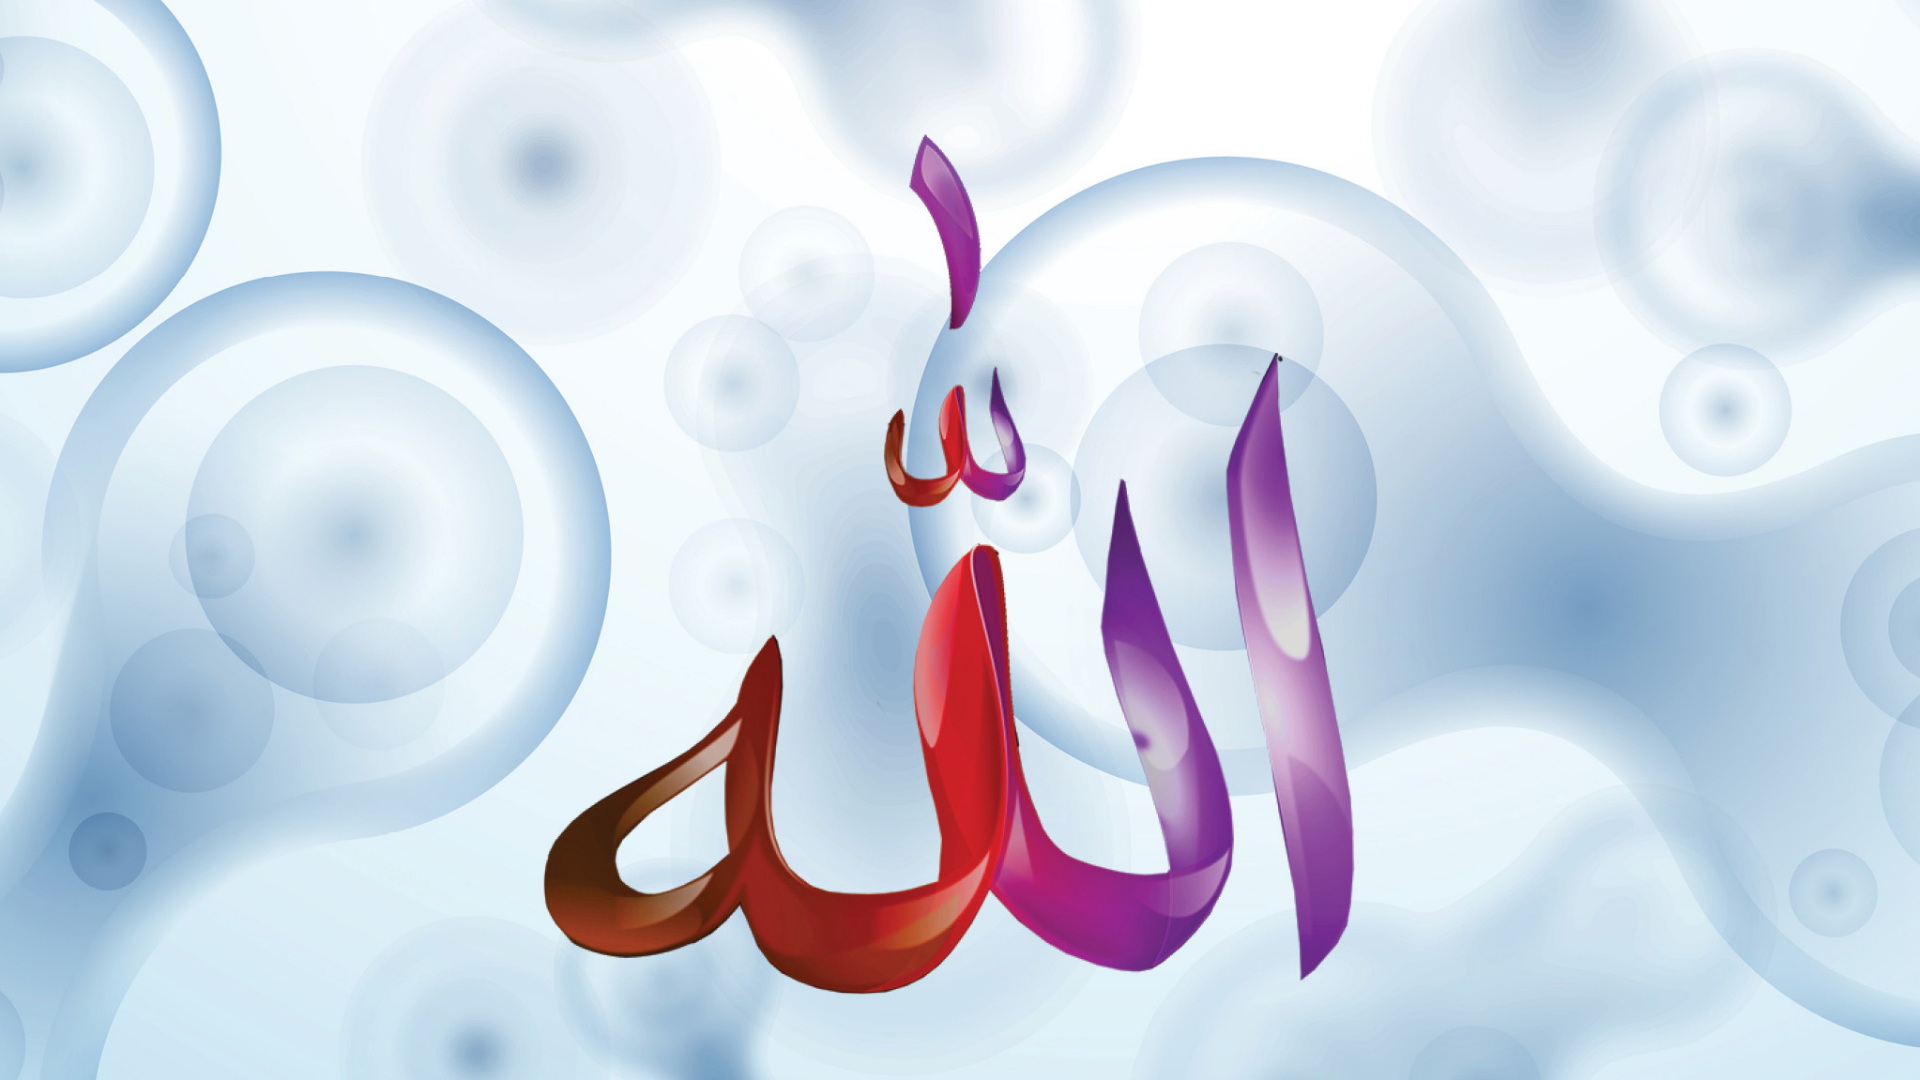 Secrets of the cell and Allah